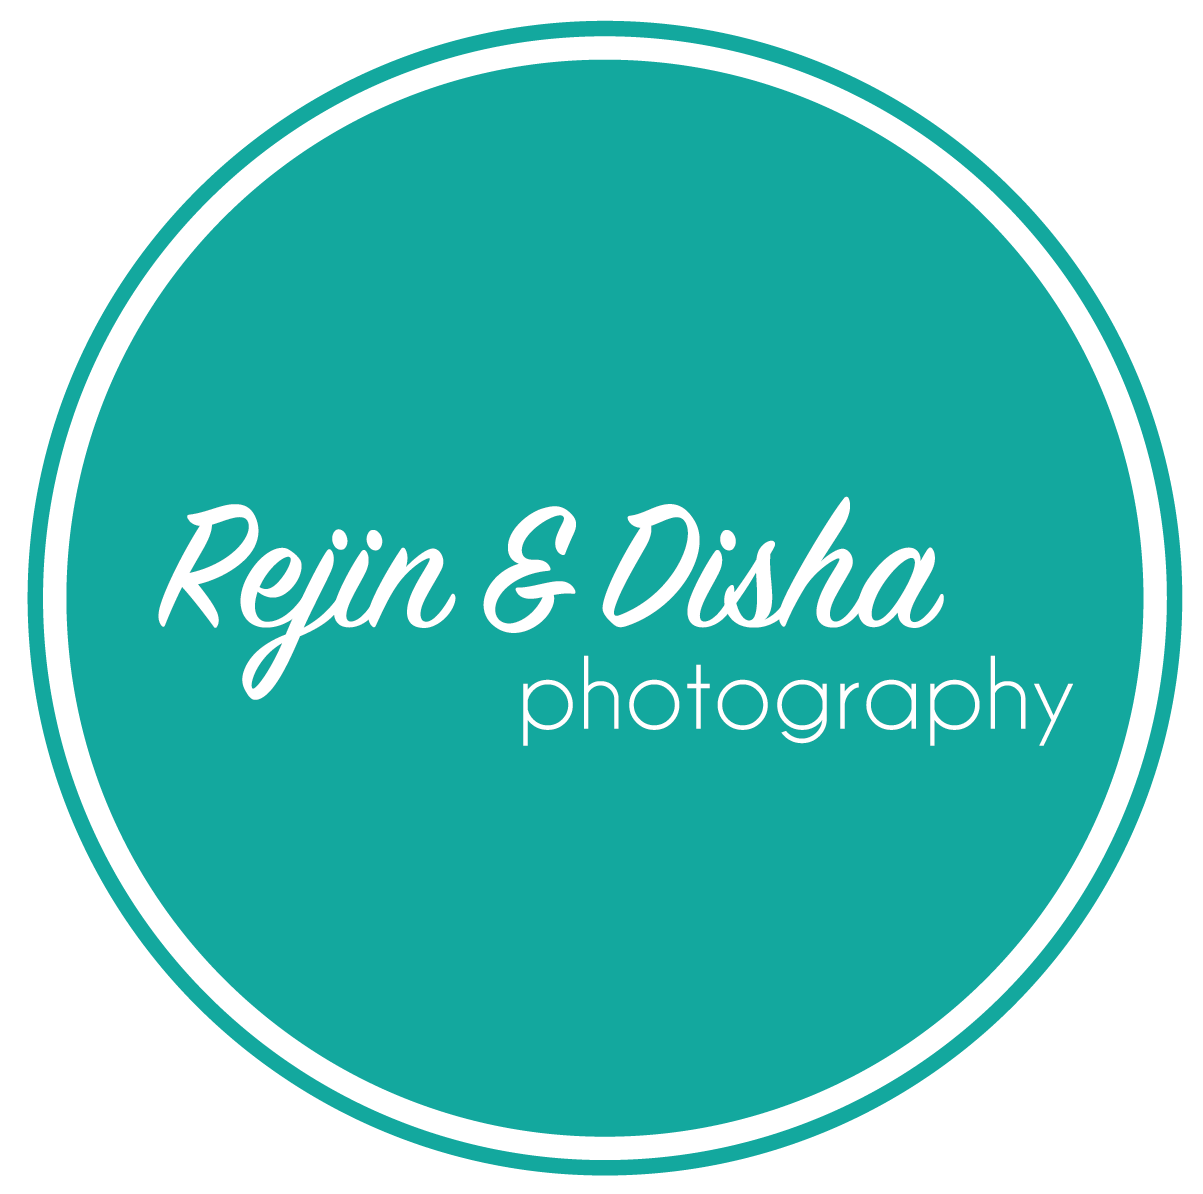 Rejin & Disha Photography